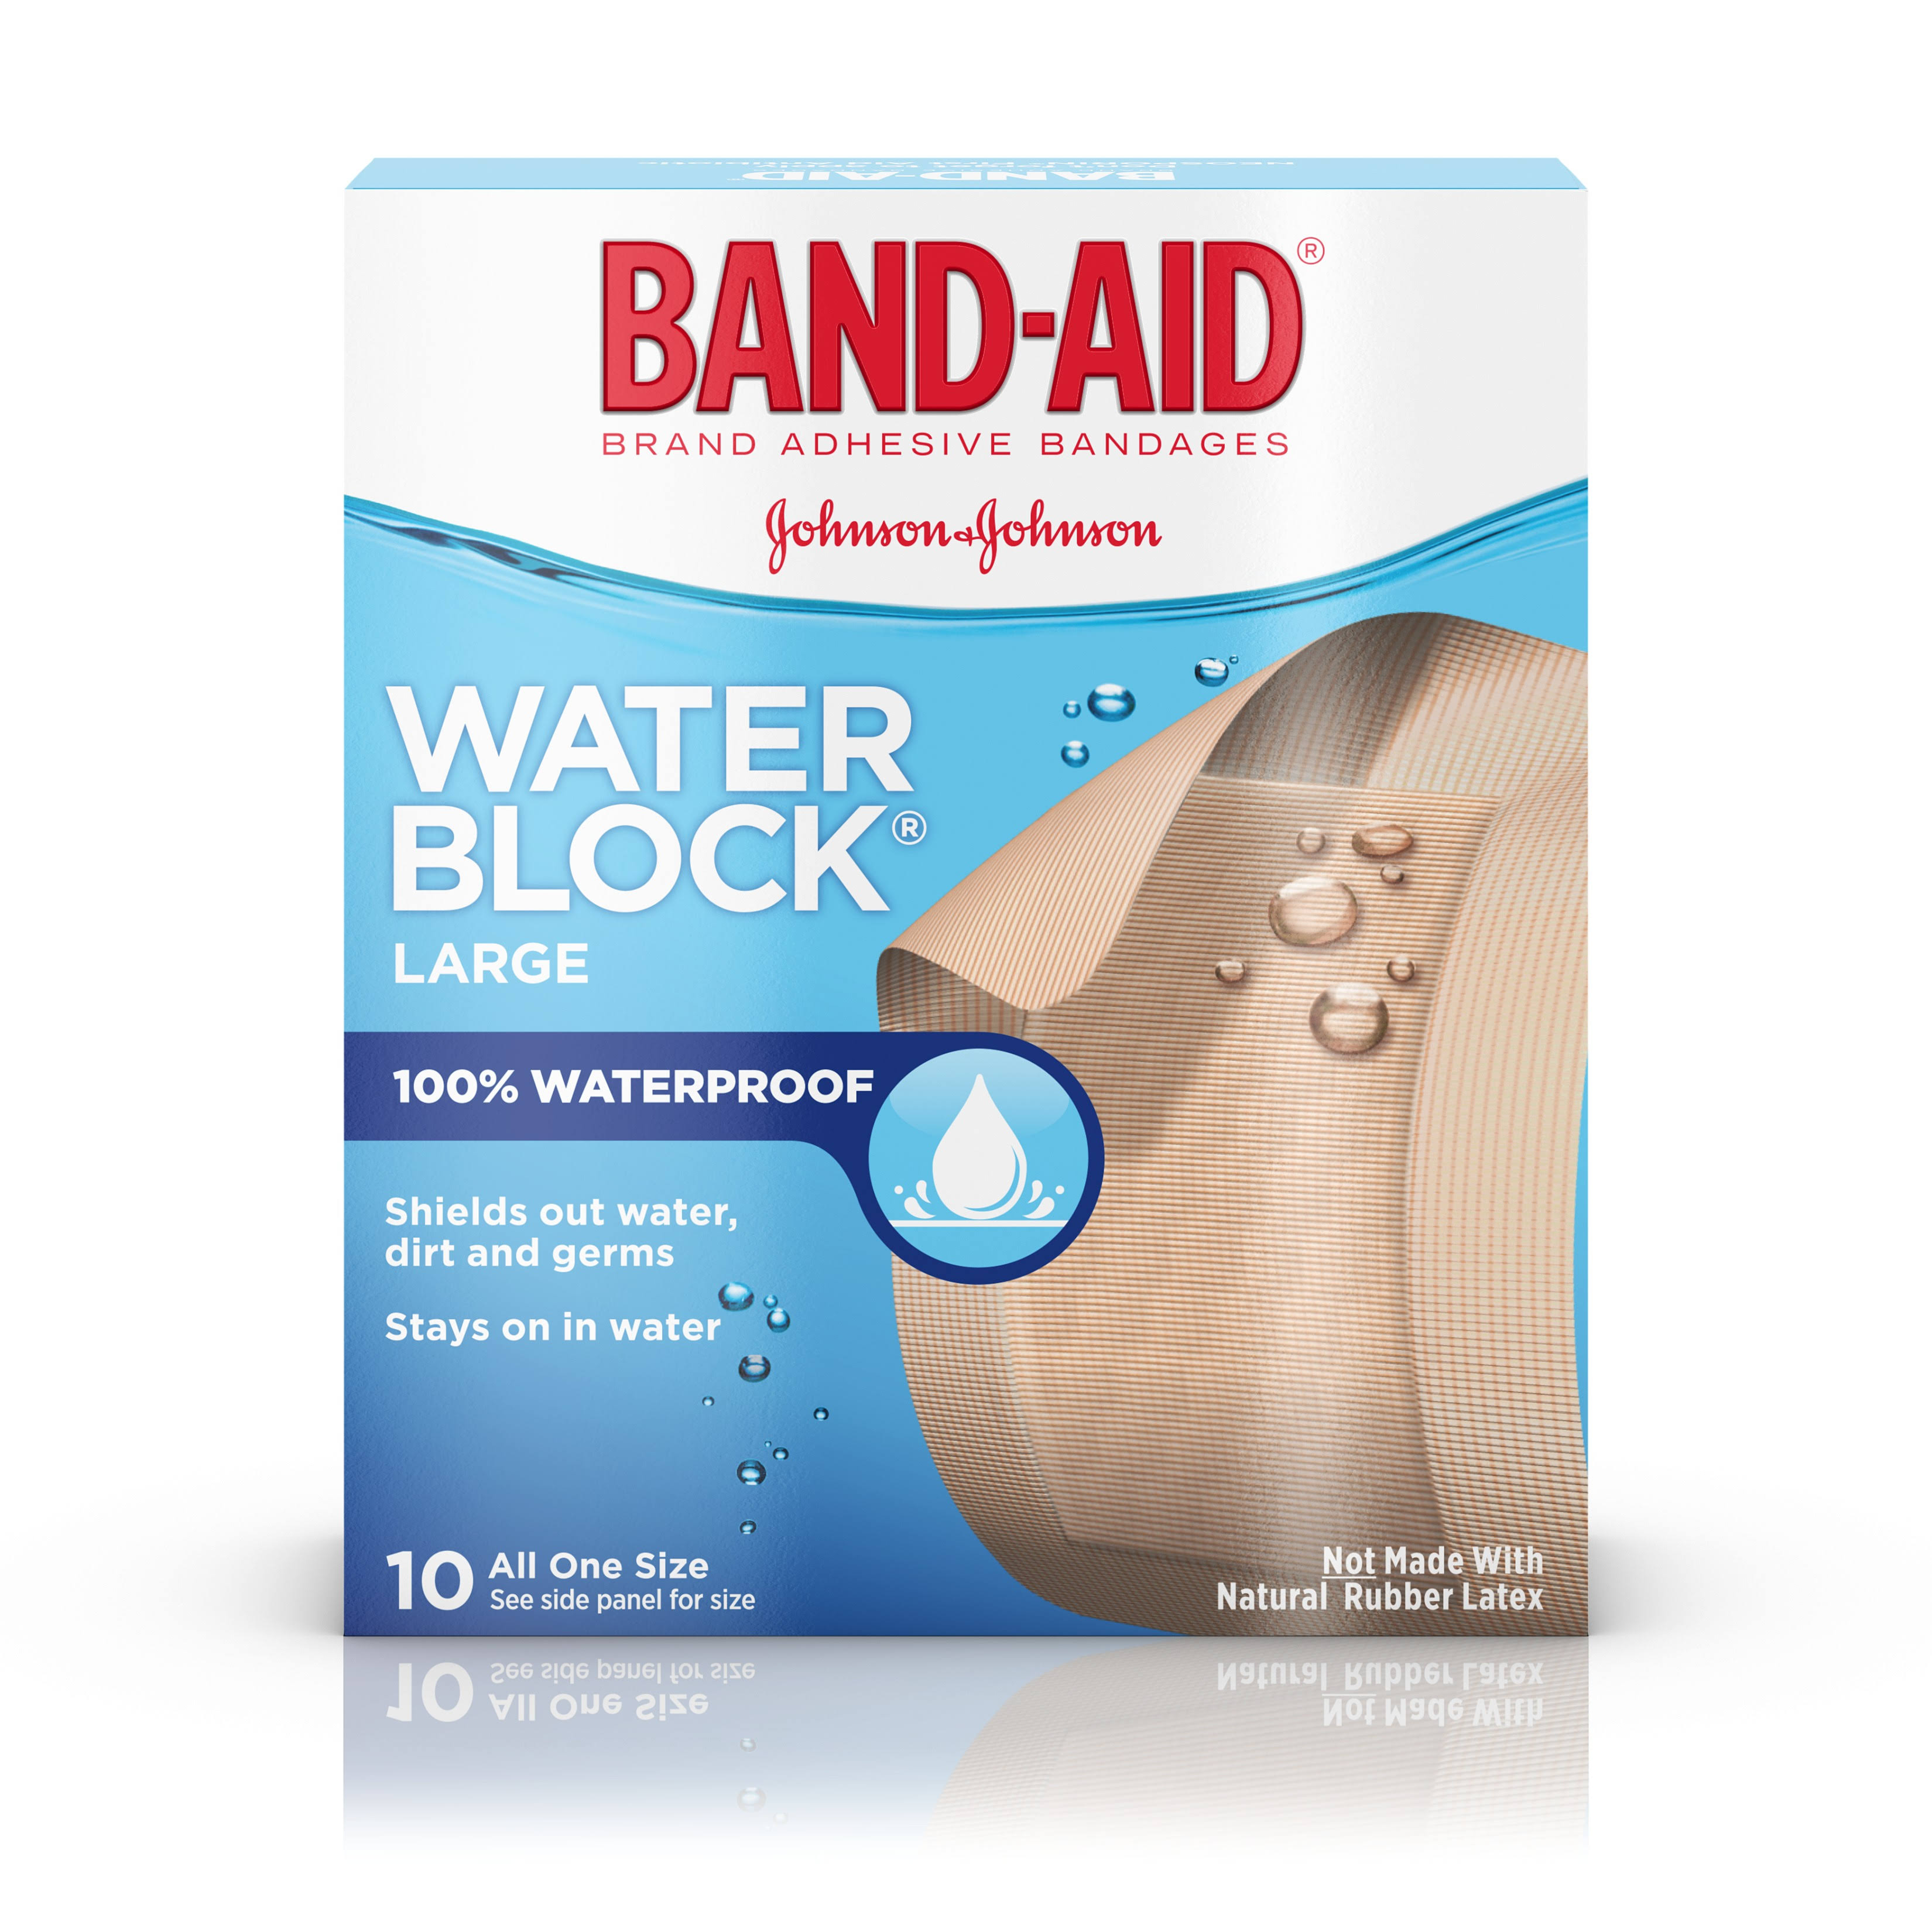 Band-Aid Water Block Plus Adhesive Bandages - Large, 10 Bandages